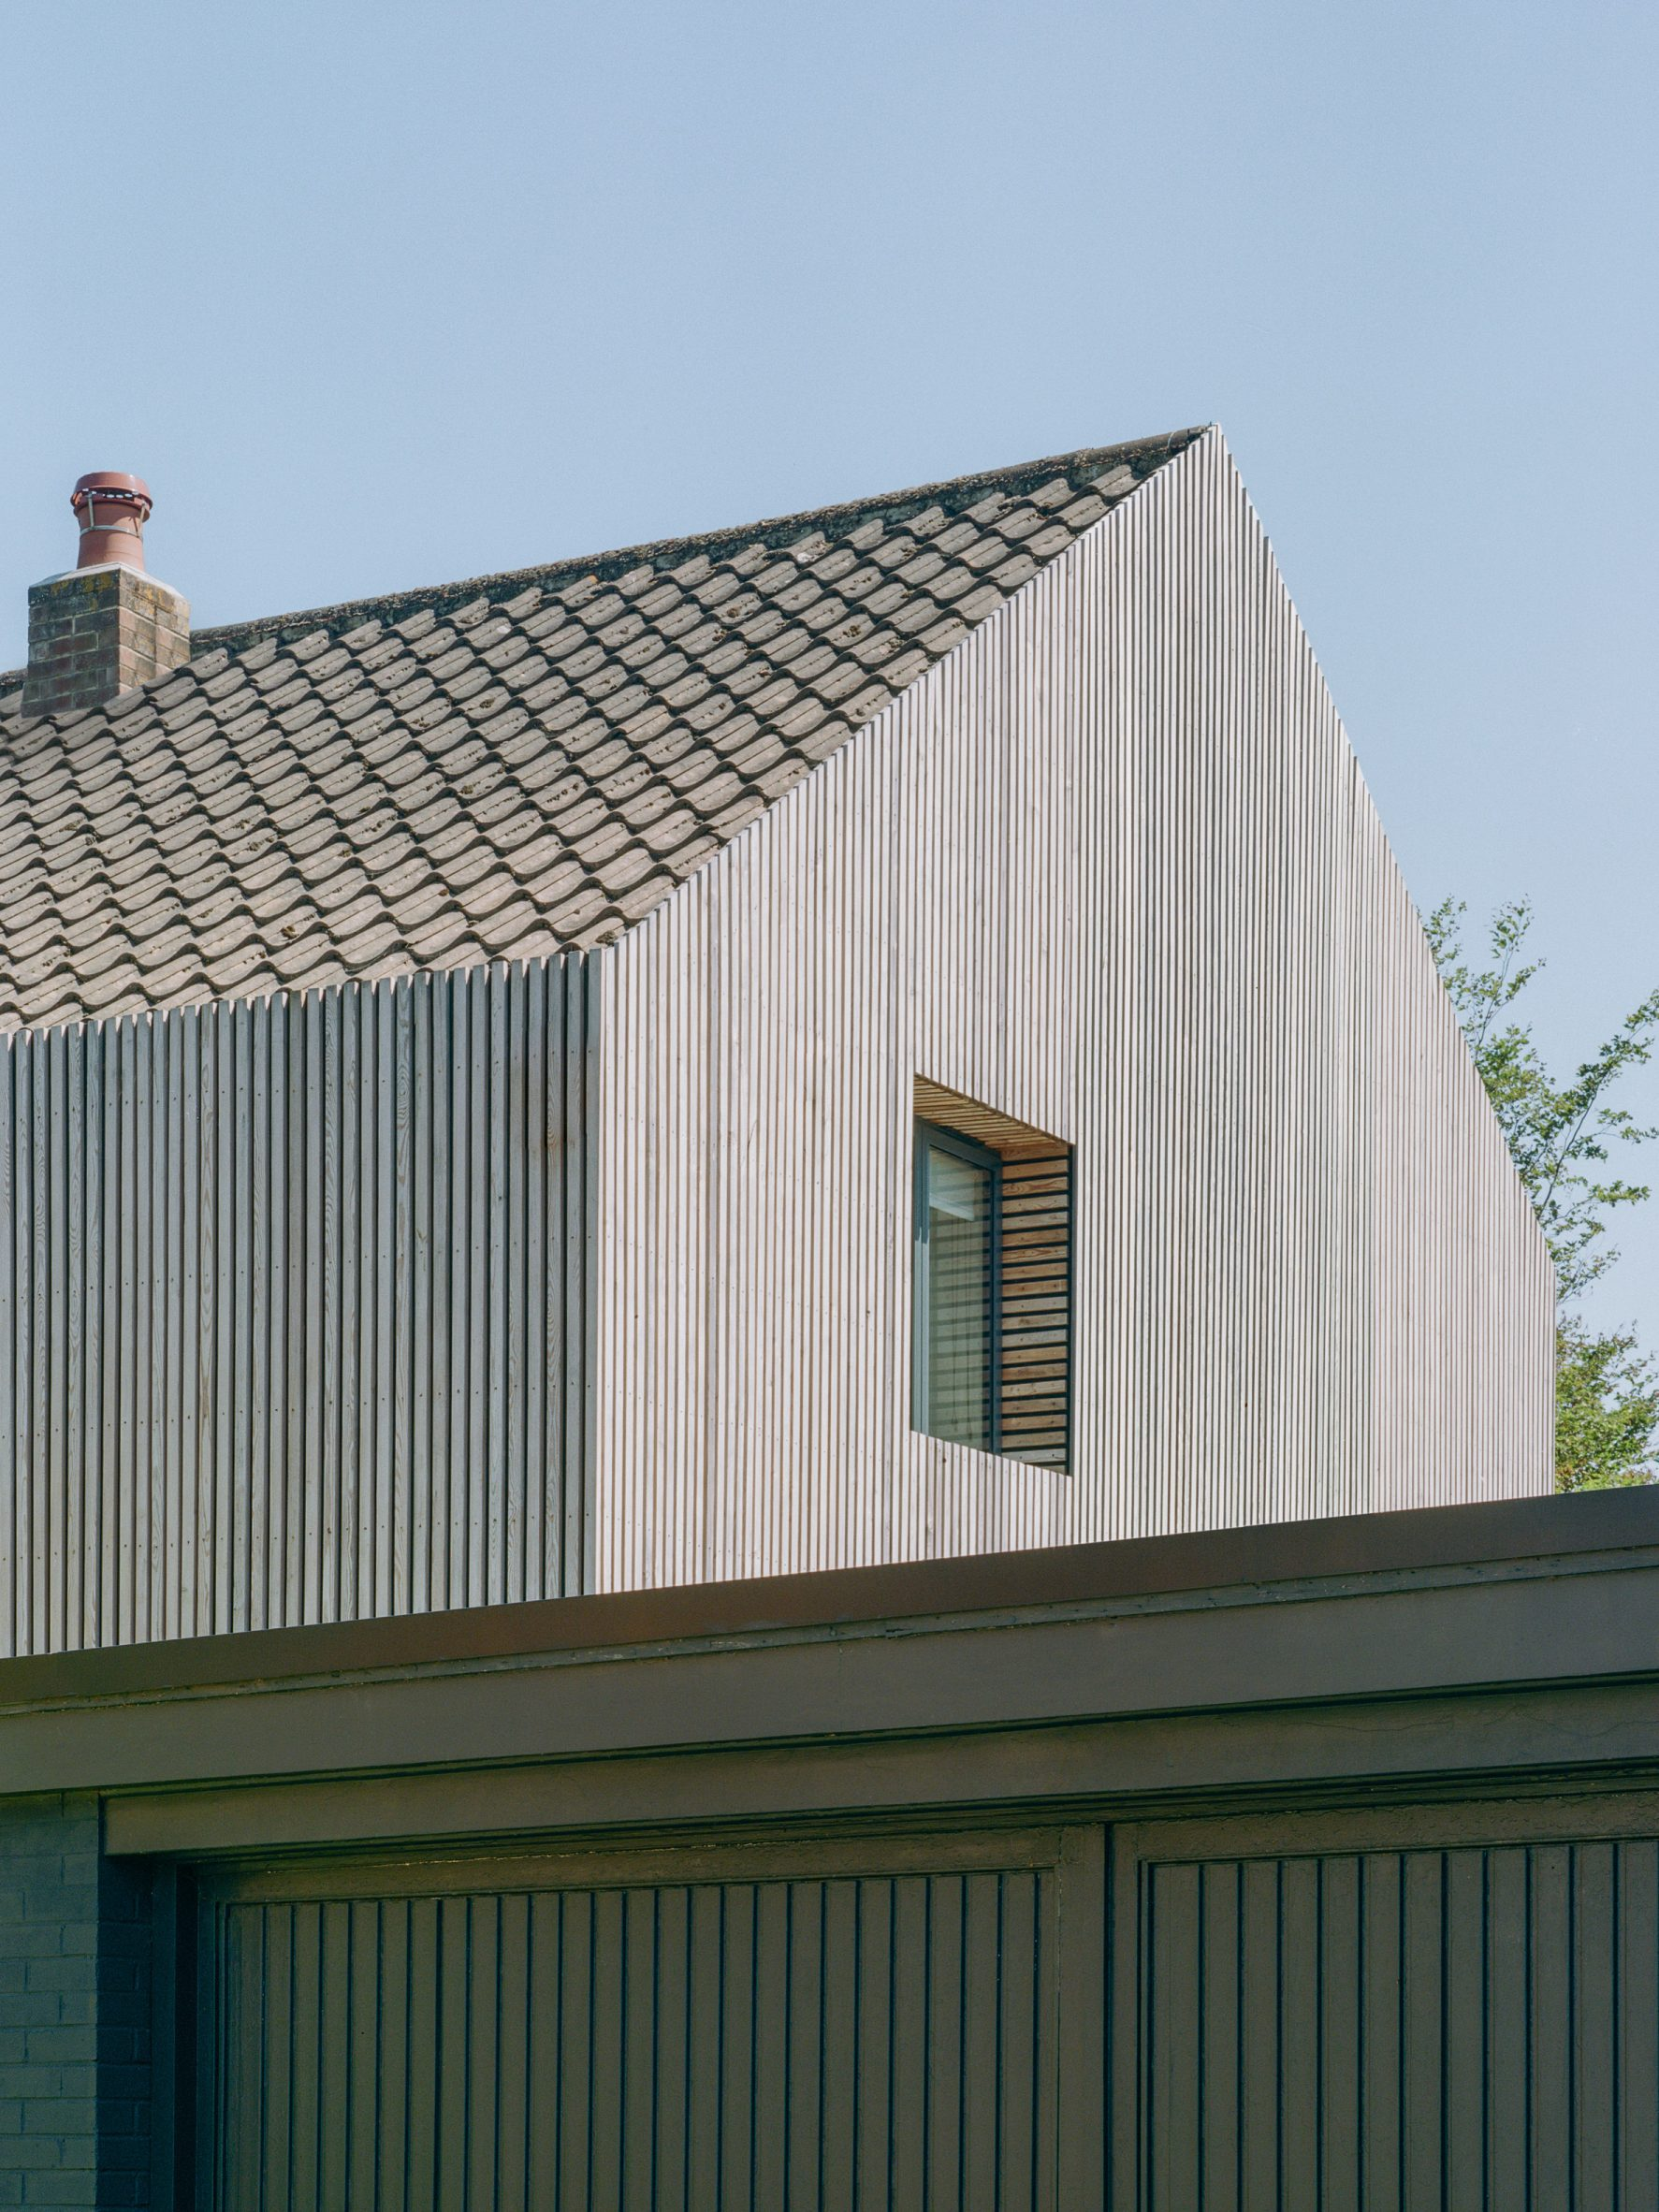 Gable end of Bawa House by Alter & Company